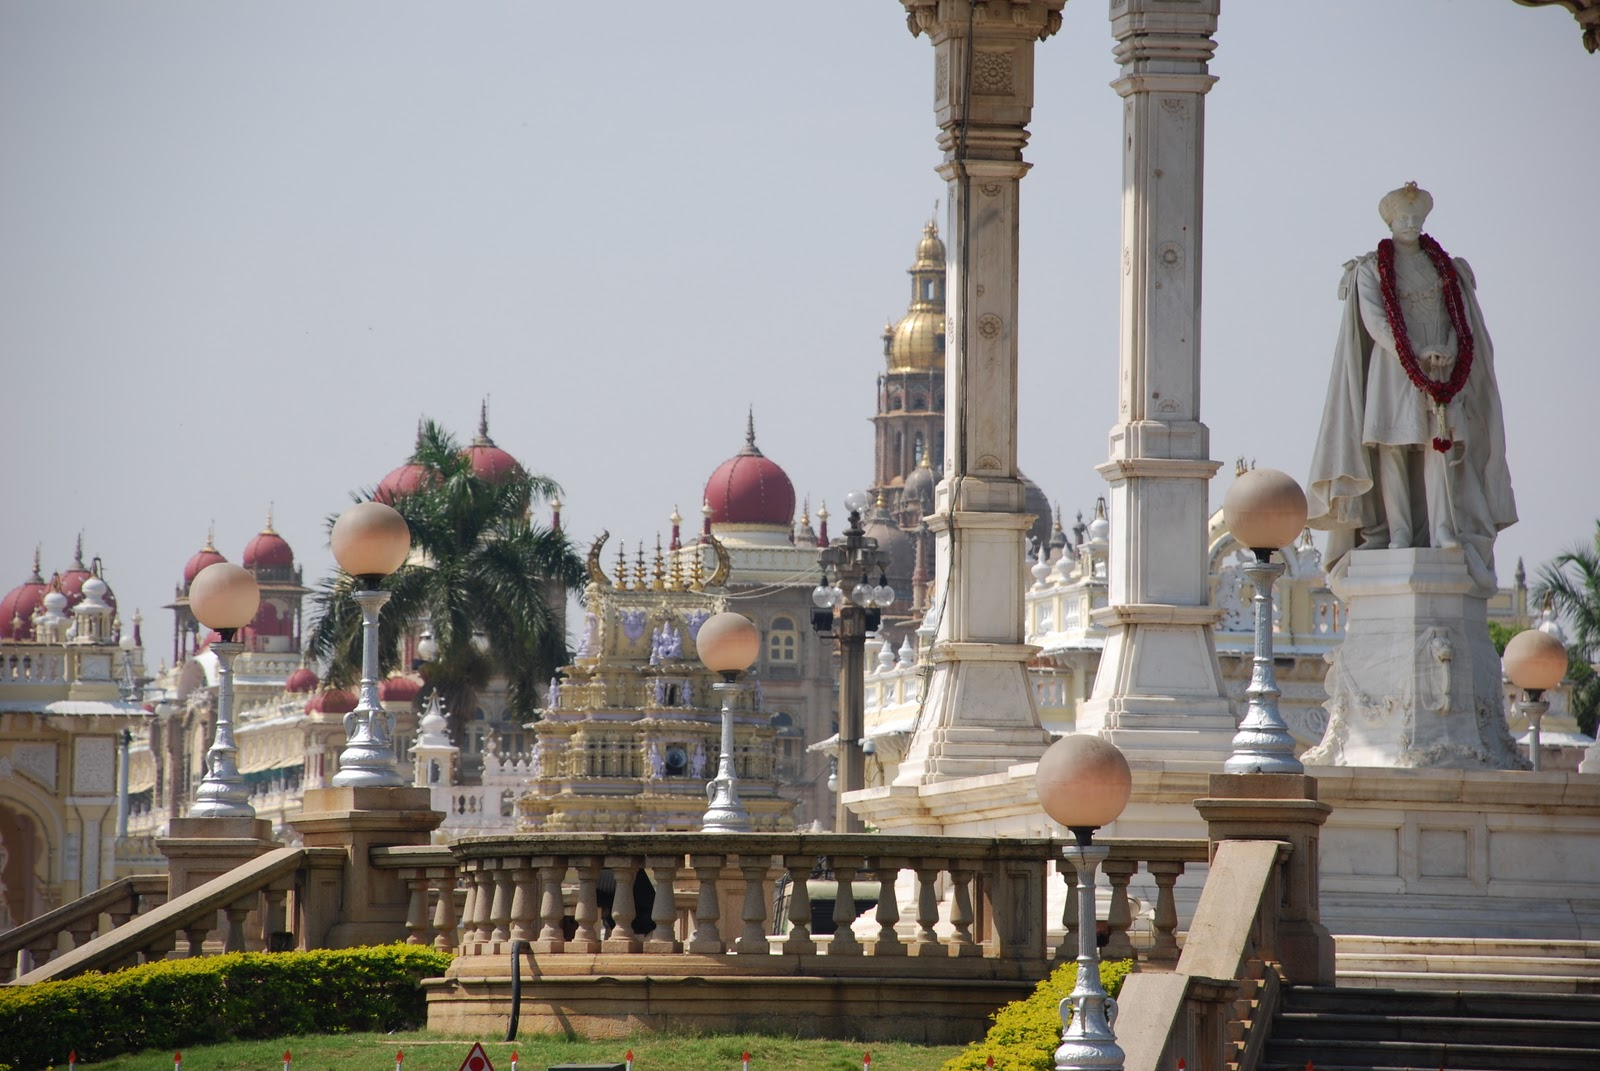 mysore palace wallpapers free download